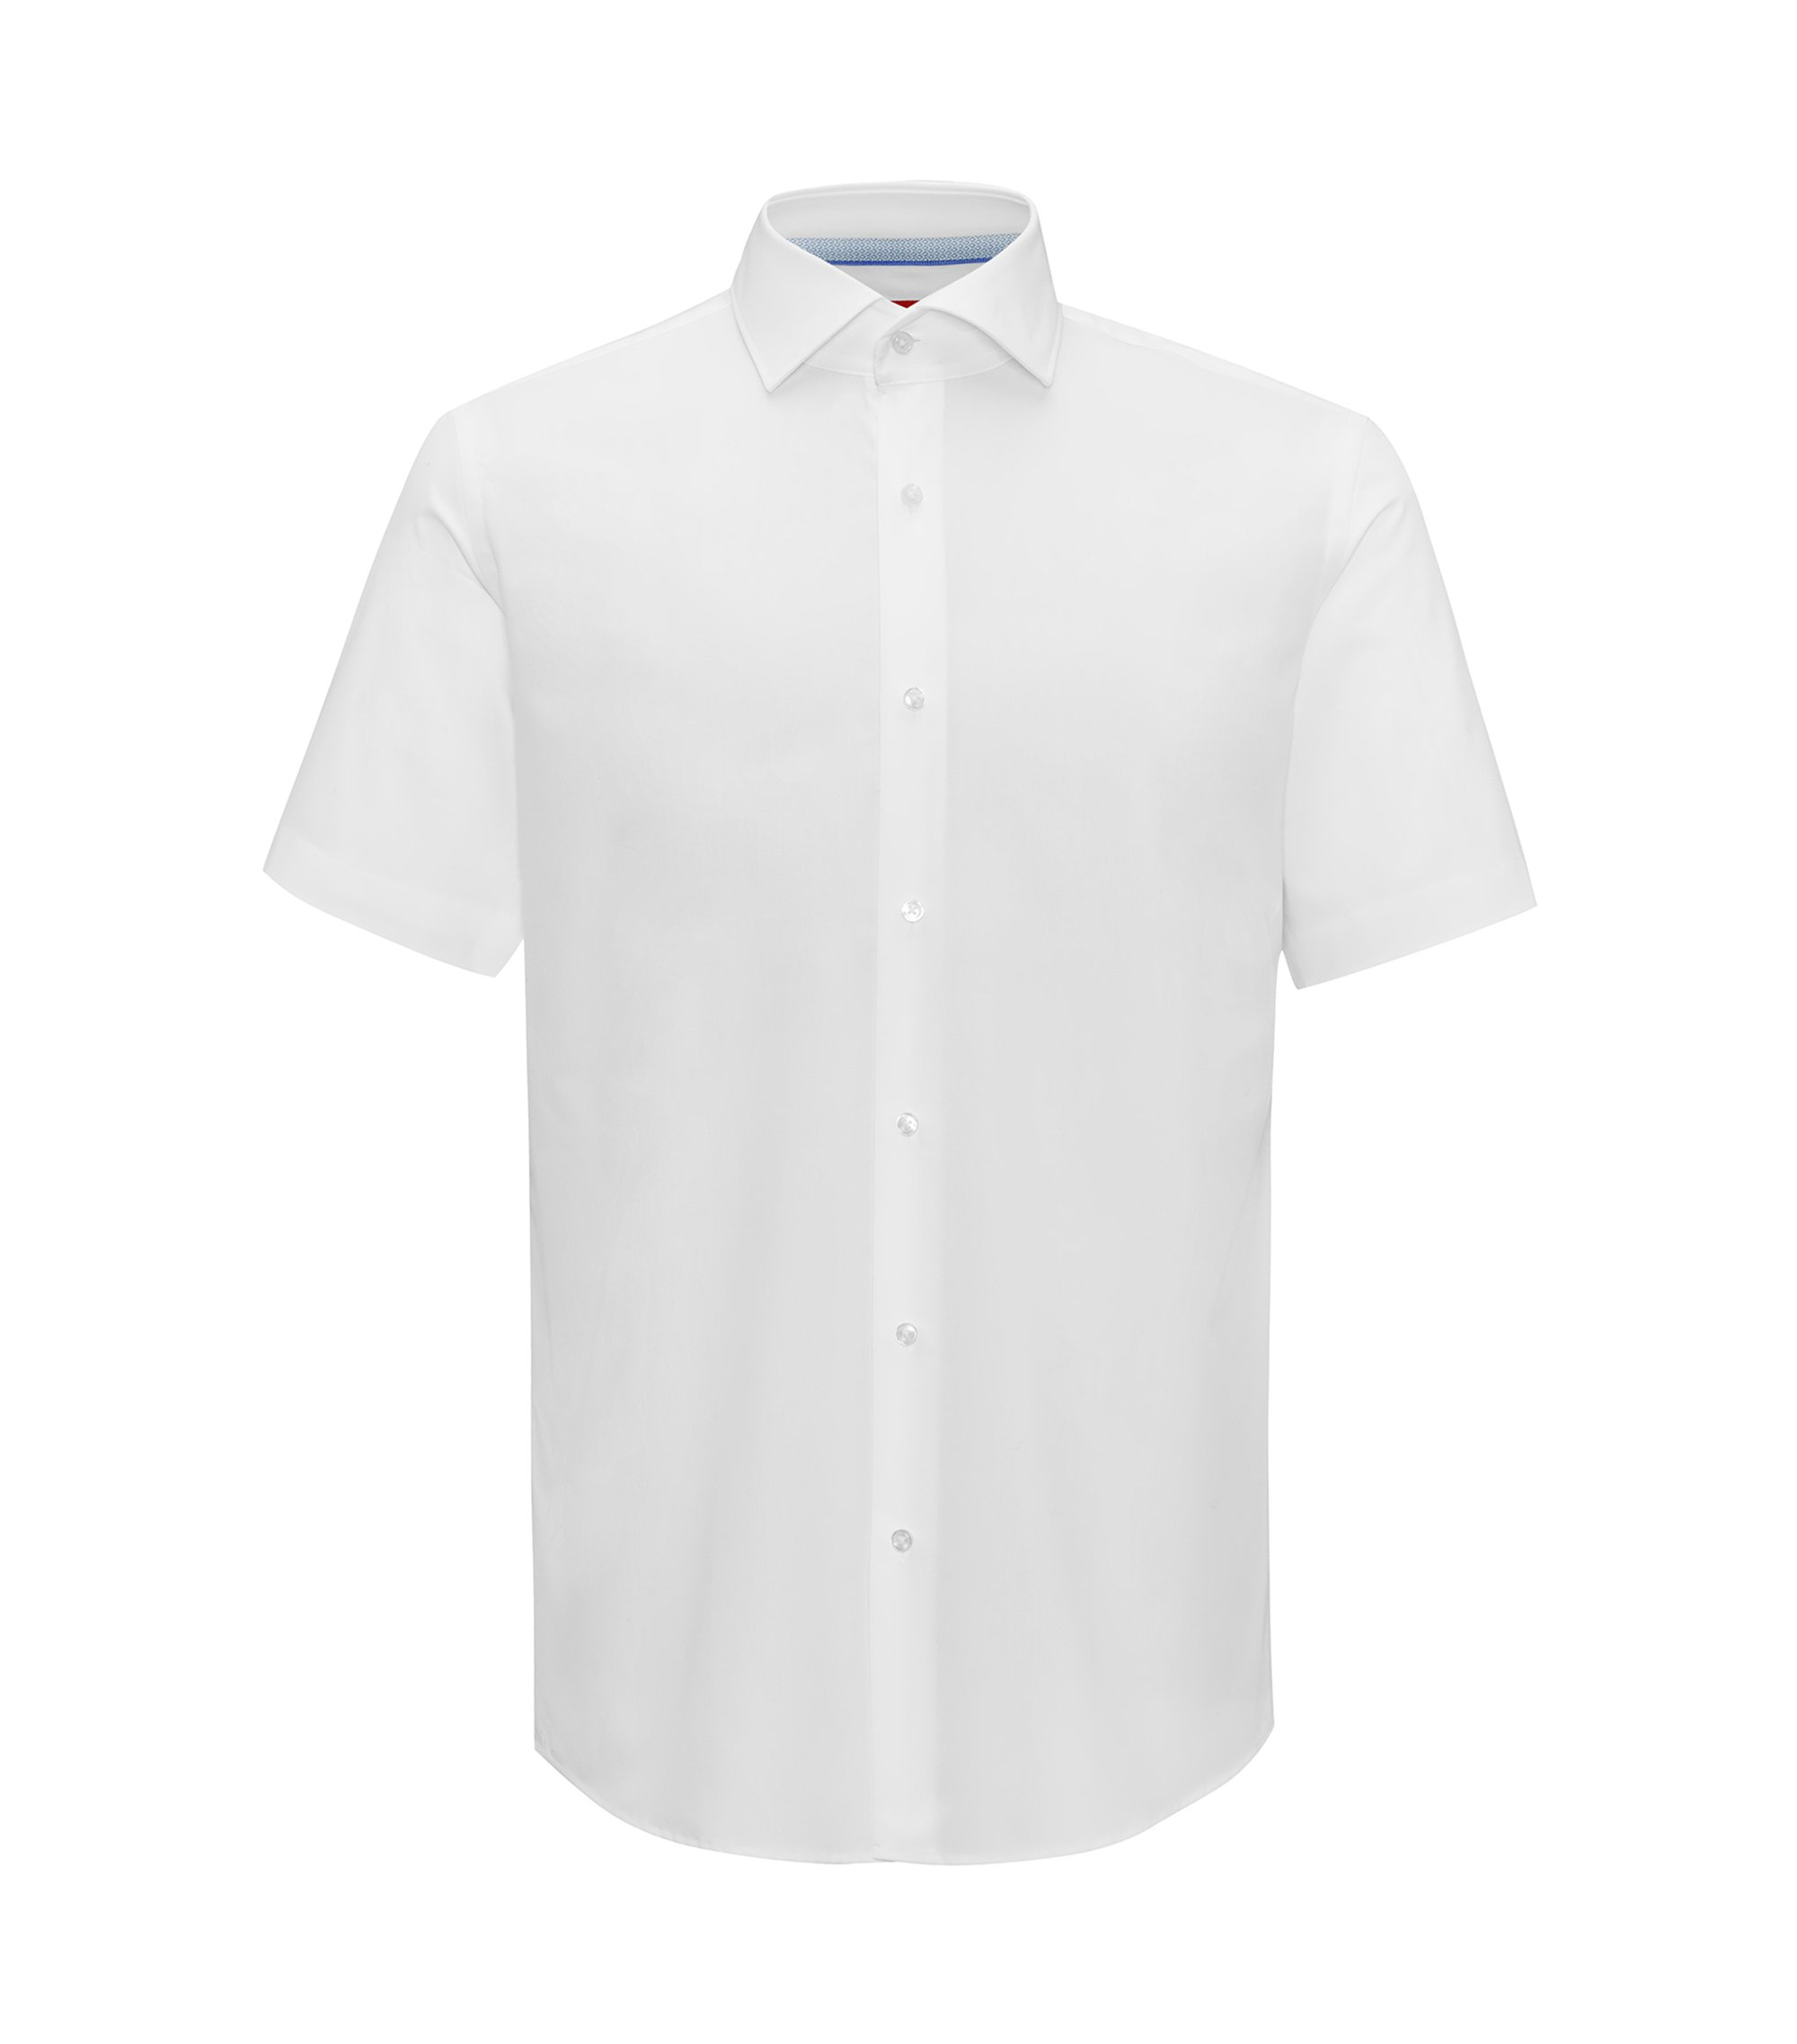 Regular-fit short-sleeved shirt in cotton poplin, Open White